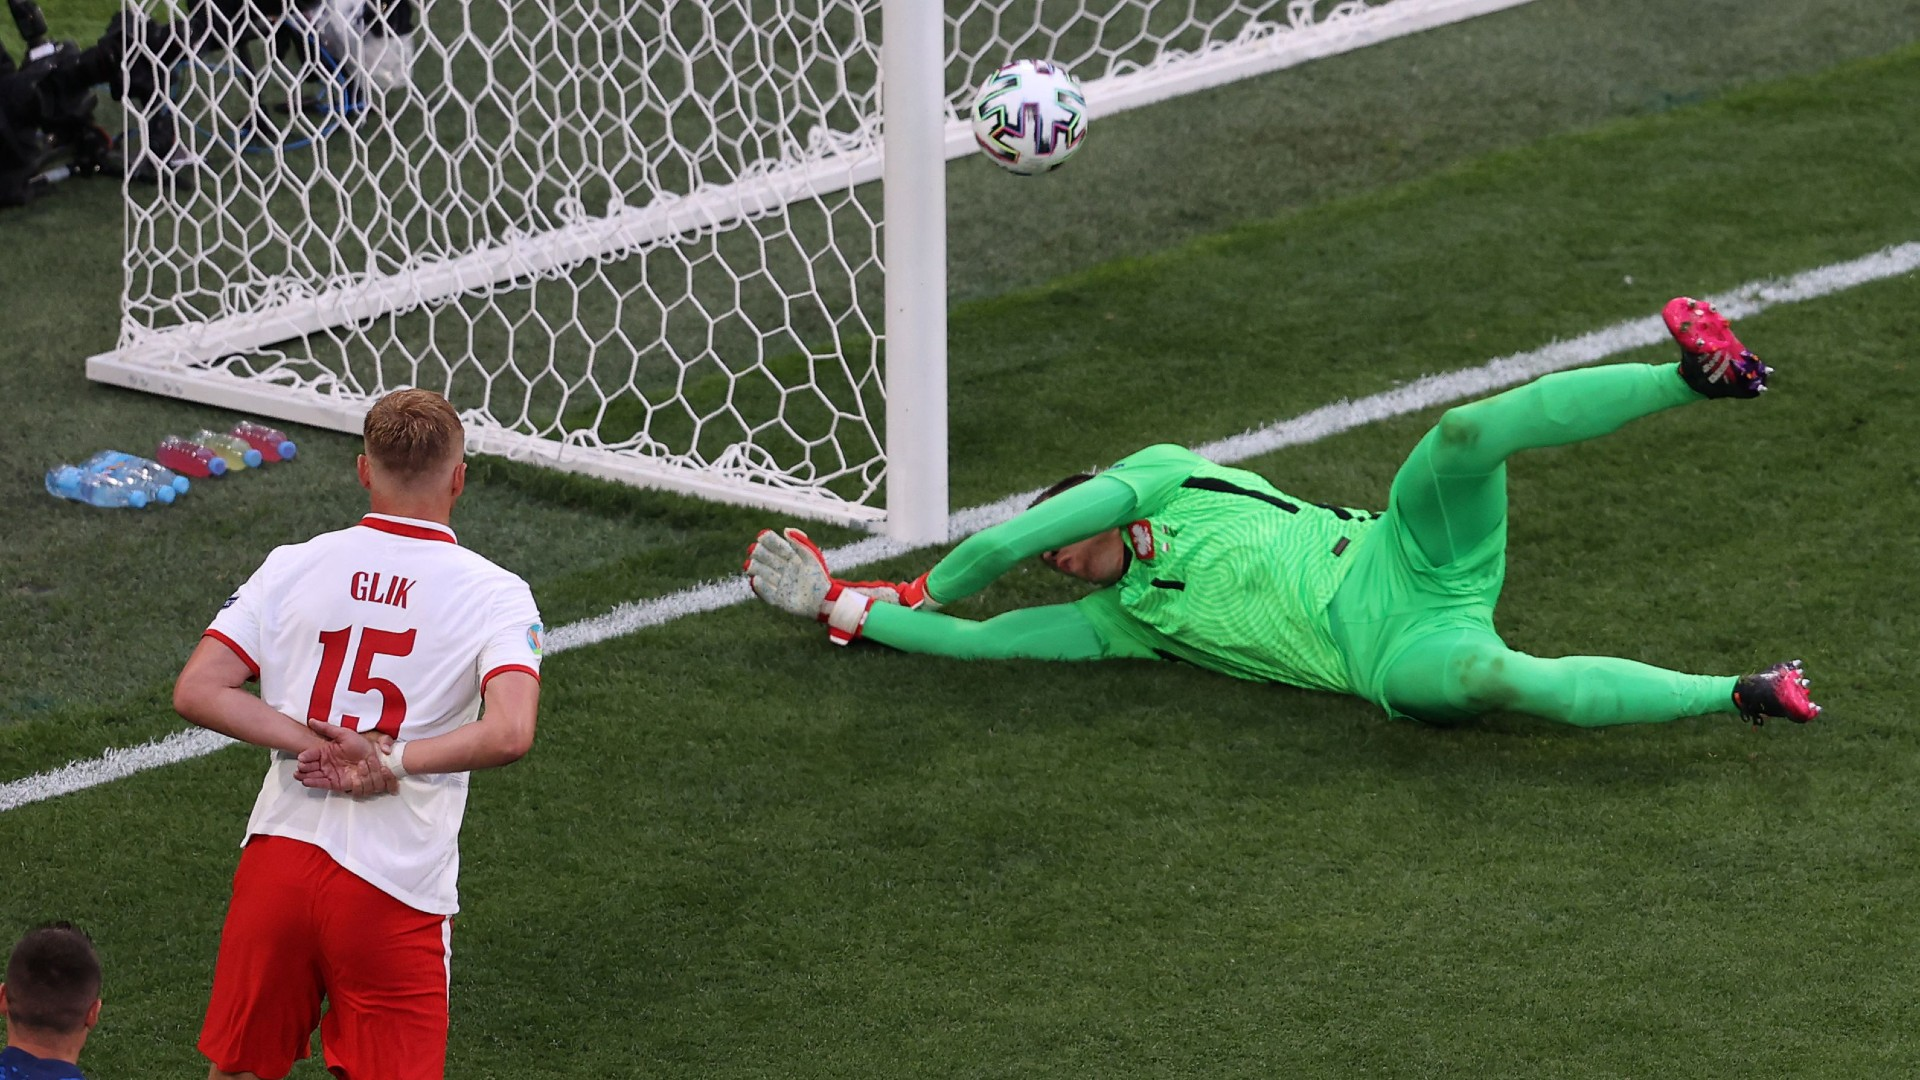 Poland's Szczesny makes Euros history by becoming first goalkeeper credited with own goal